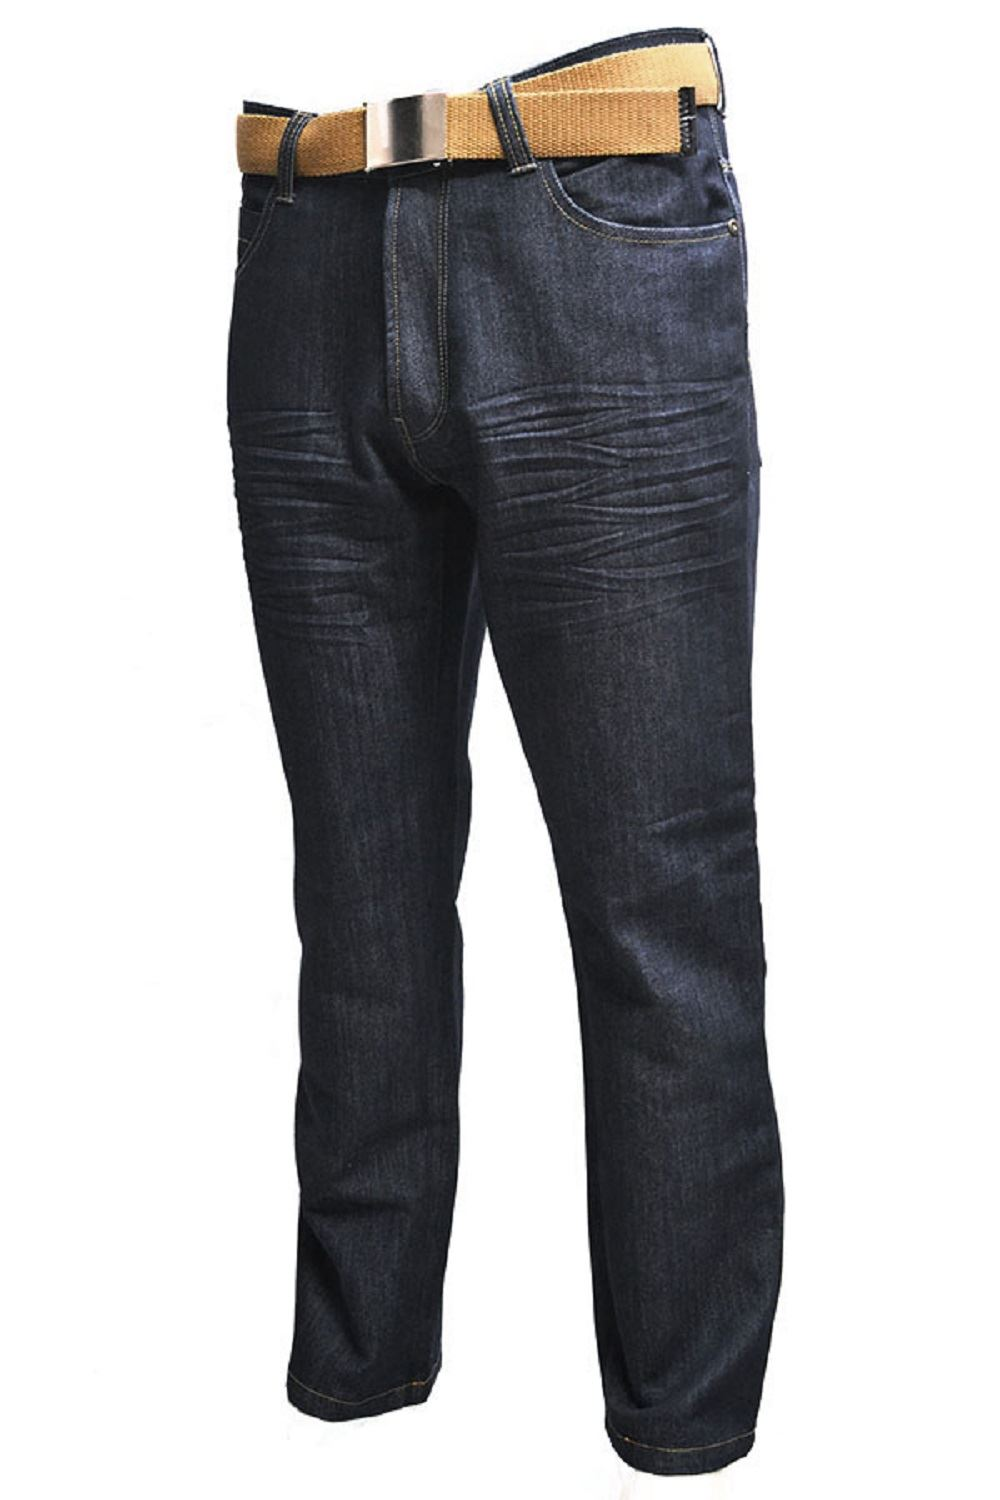 Mens-Classic-Fit-Black-Indigo-Jeans-Kori-By-Creon-Previs thumbnail 21